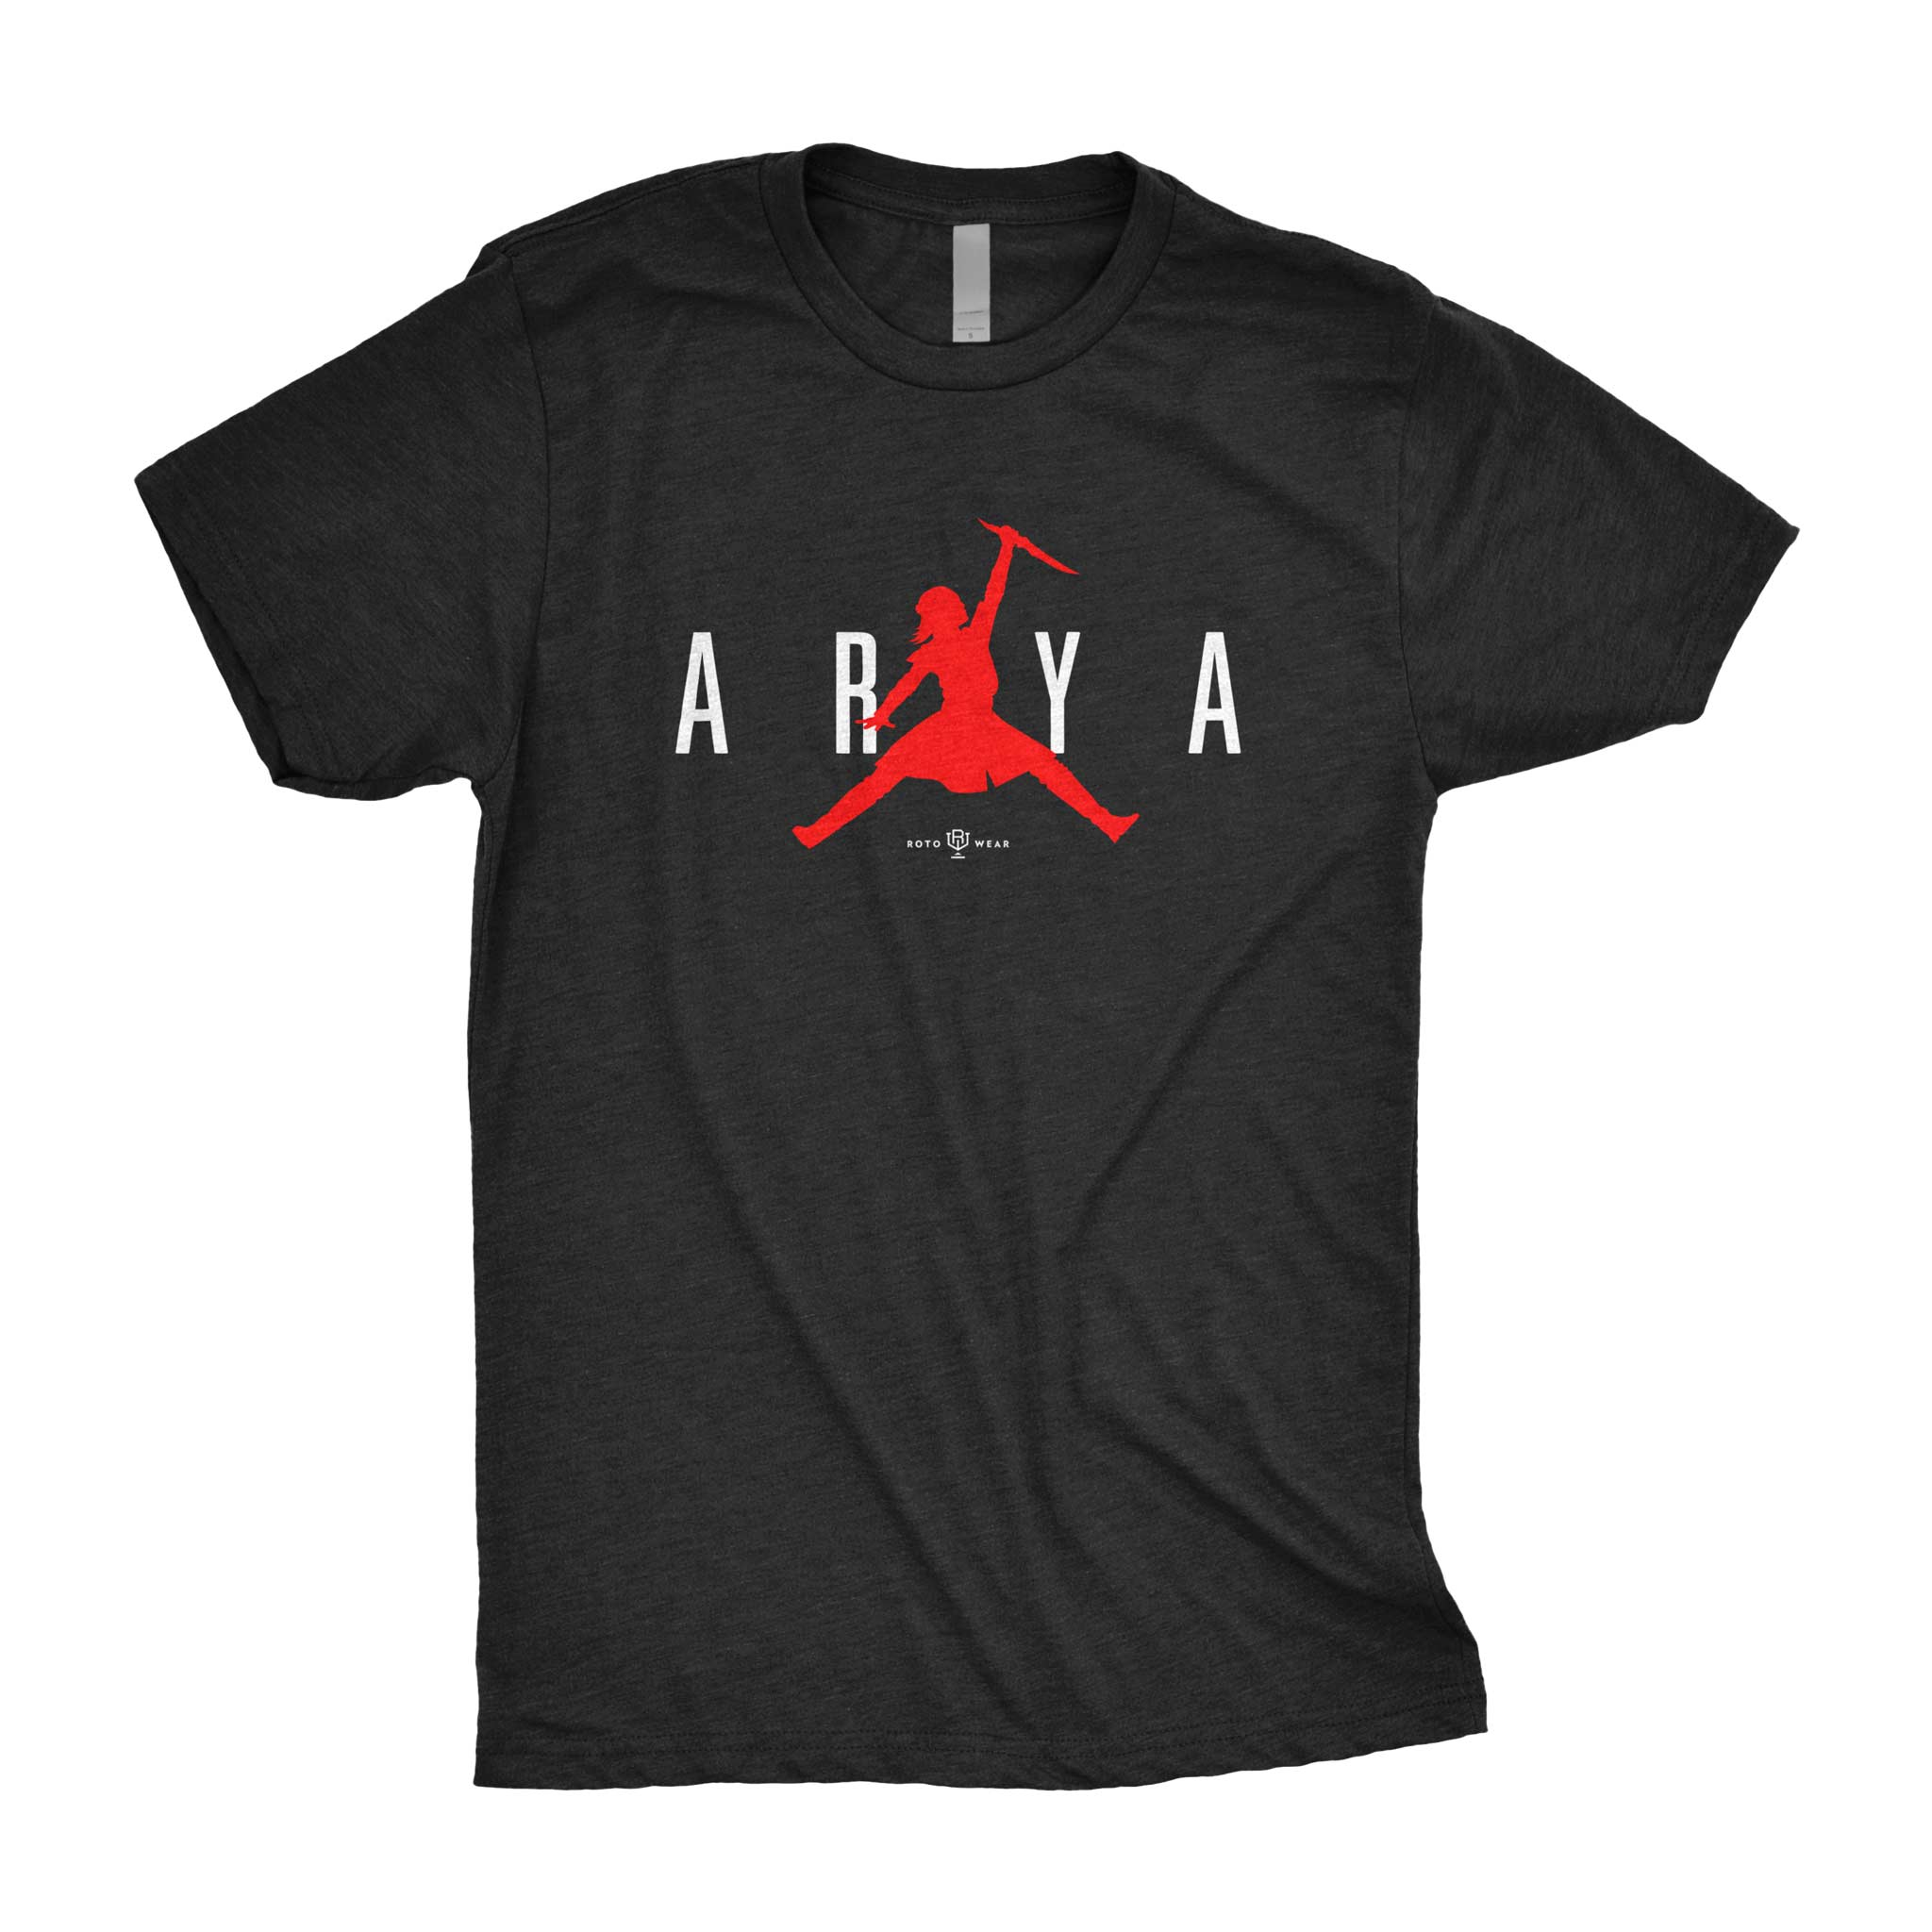 b87ef719 Air Arya T-Shirt | Original Game Of Thrones Inspired RotoWear Design